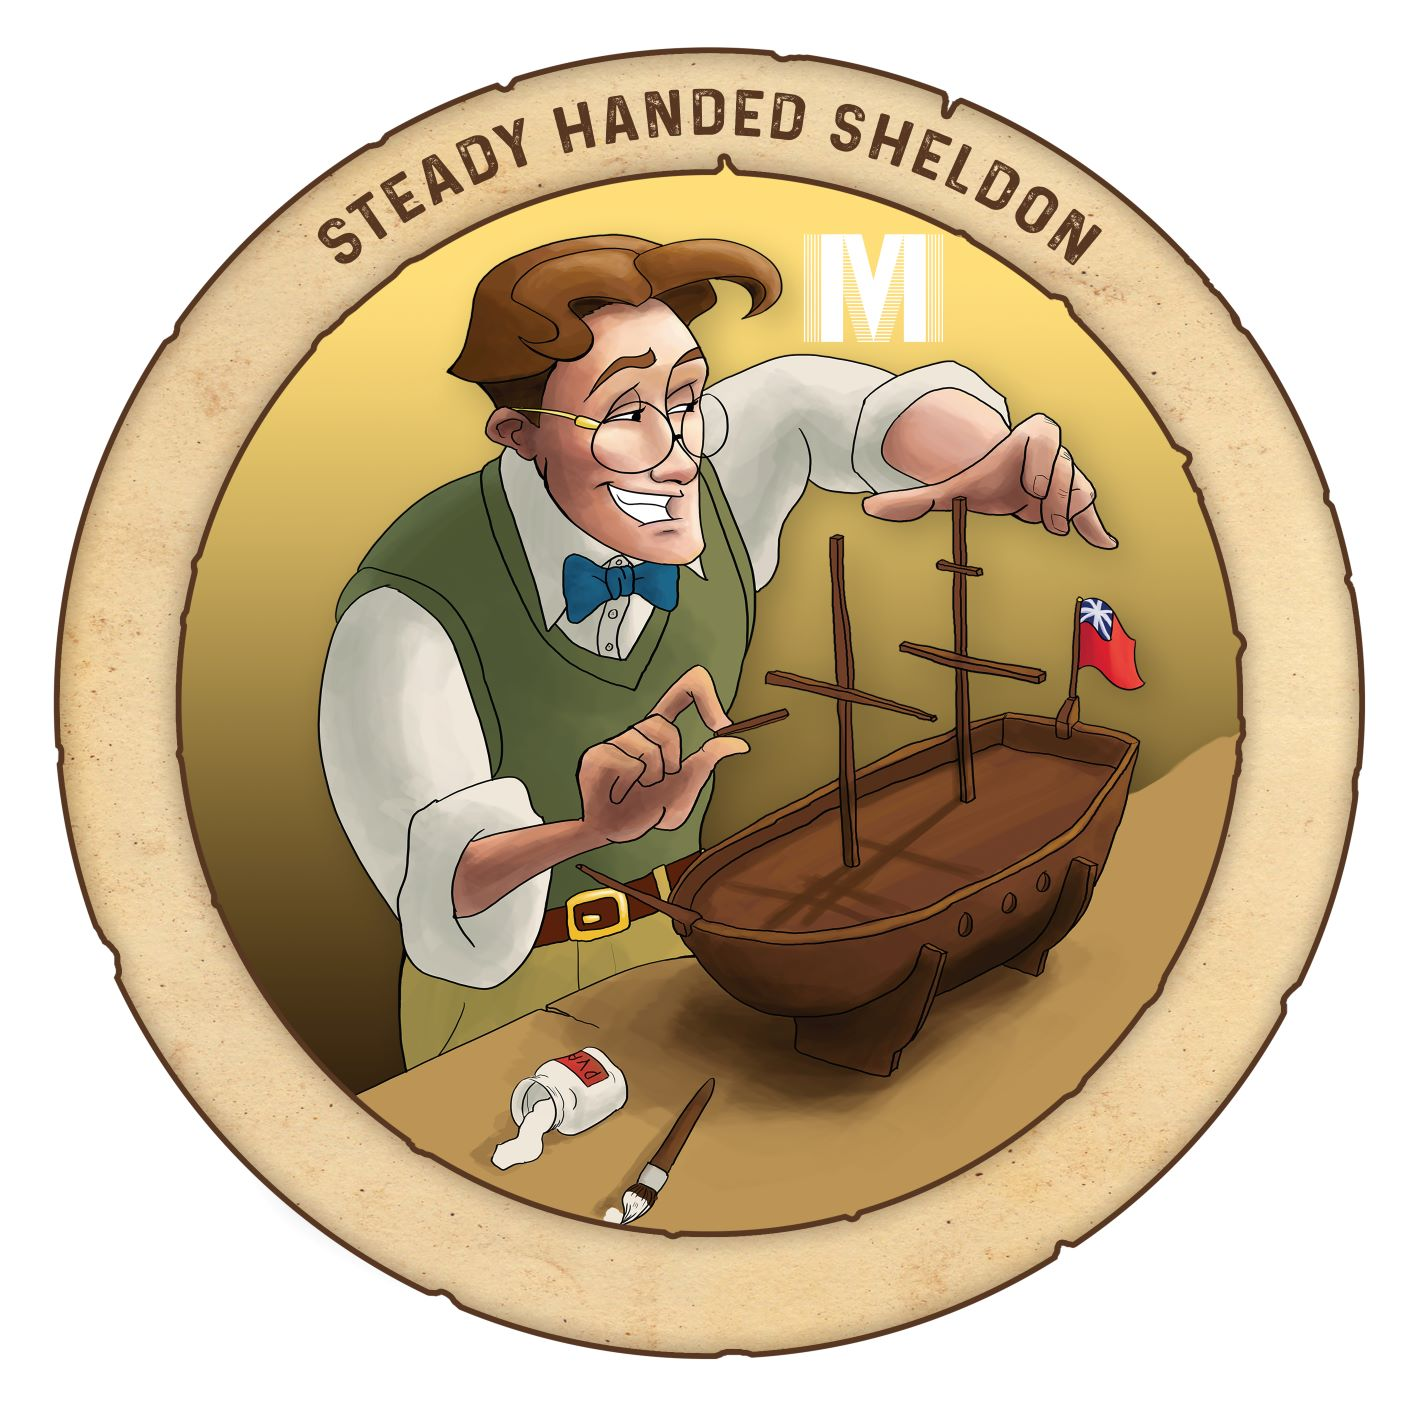 https://rfacdn.nz/maritime/assets/media/sheldon-sticker.jpg